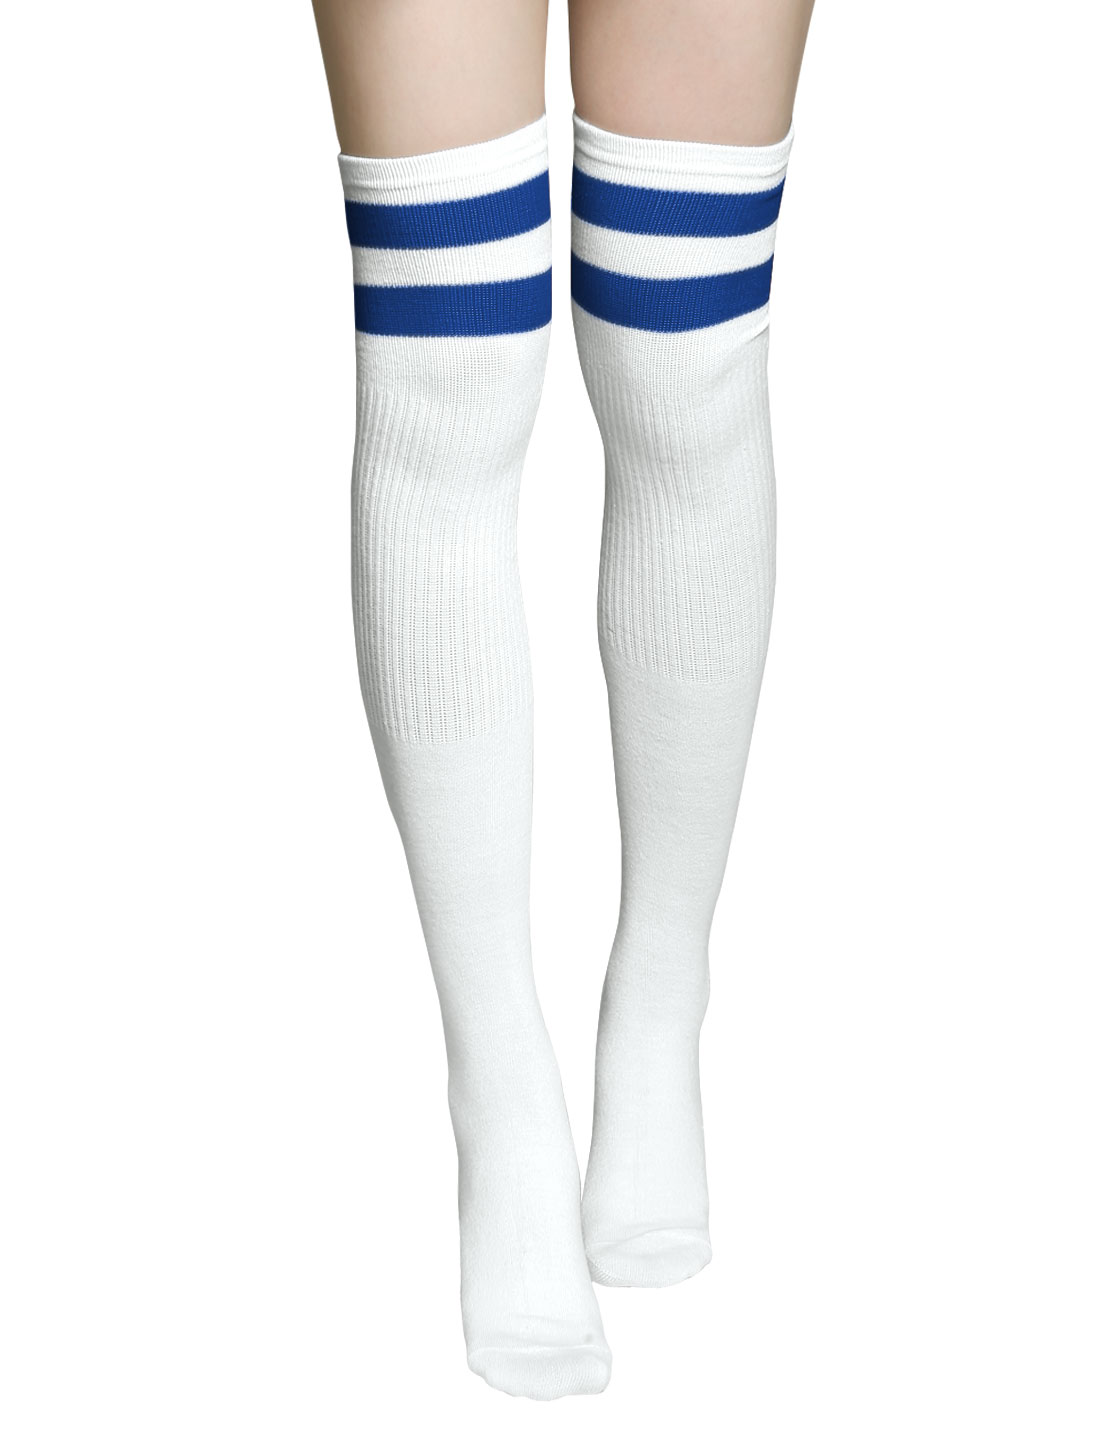 Unisex Striped Knee High Stretchy Football Socks Pair White